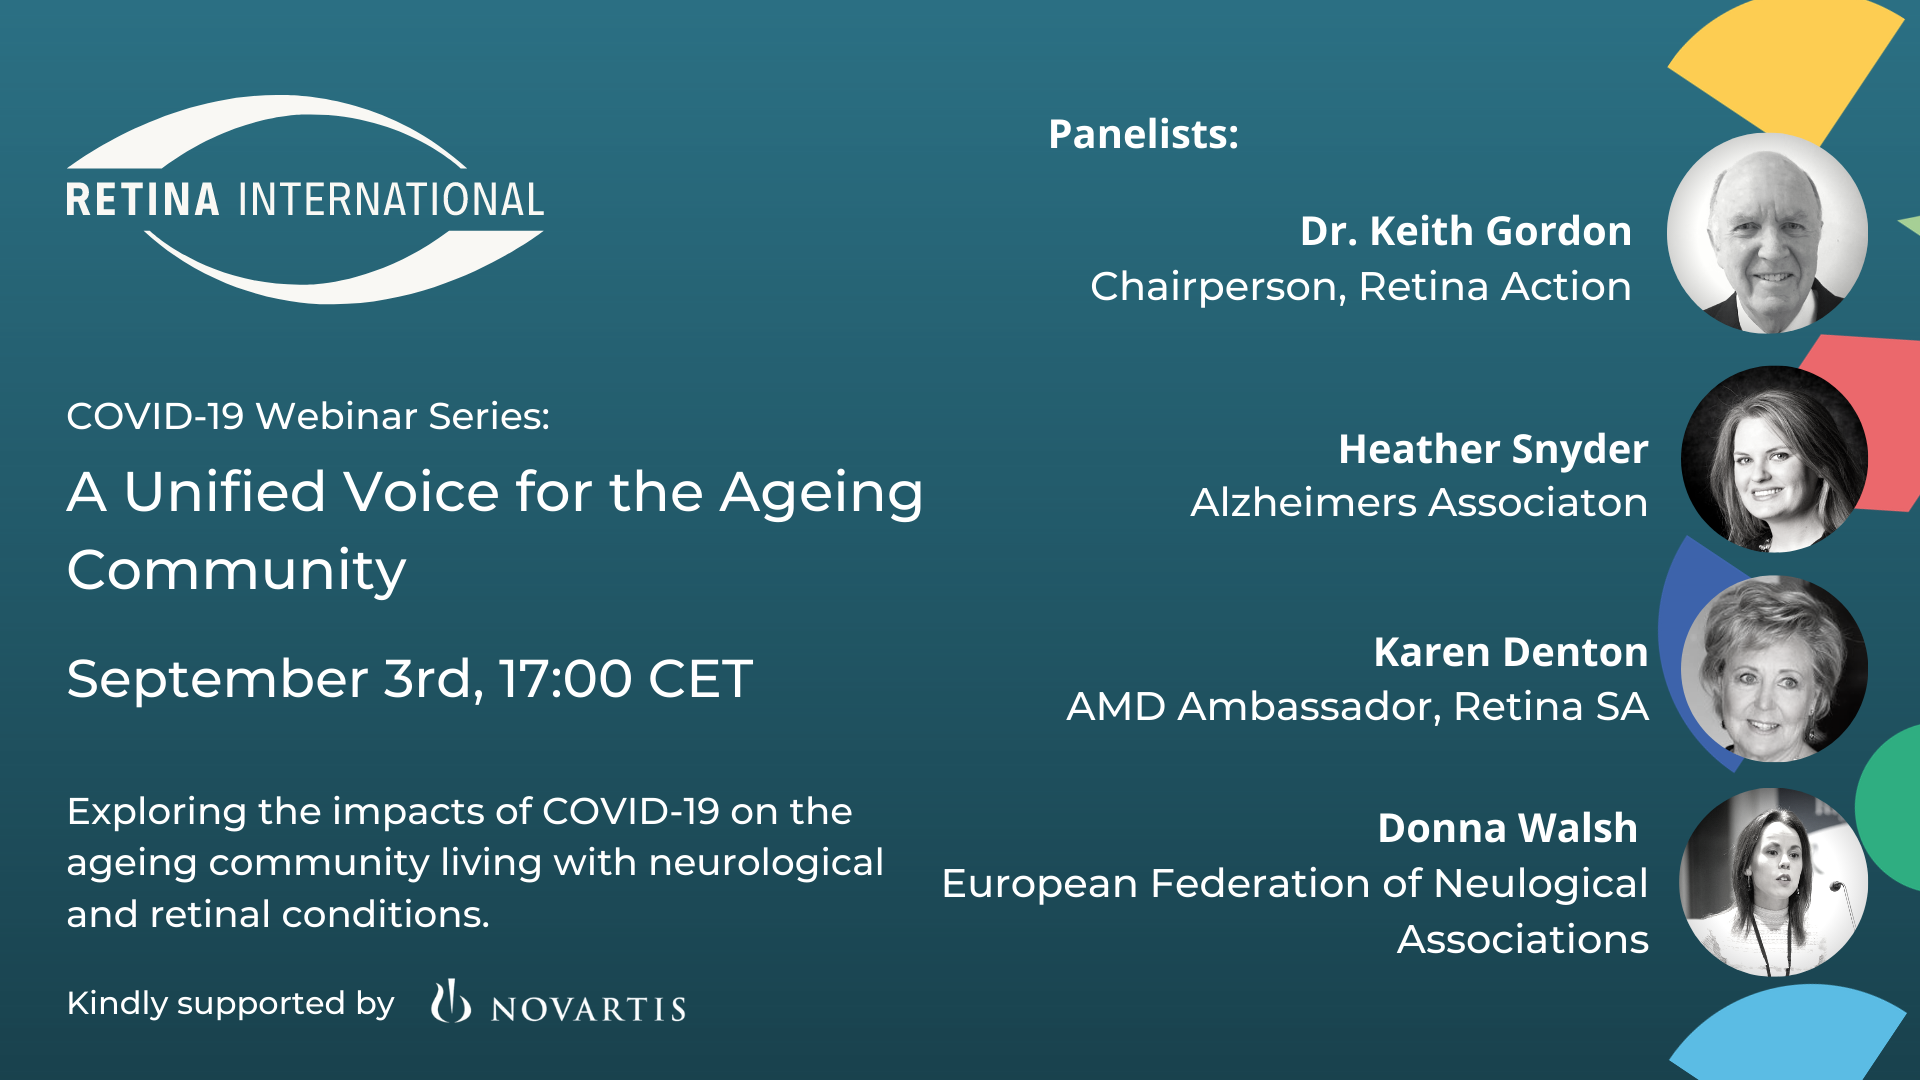 Flyer: A unified voice for the ageing community